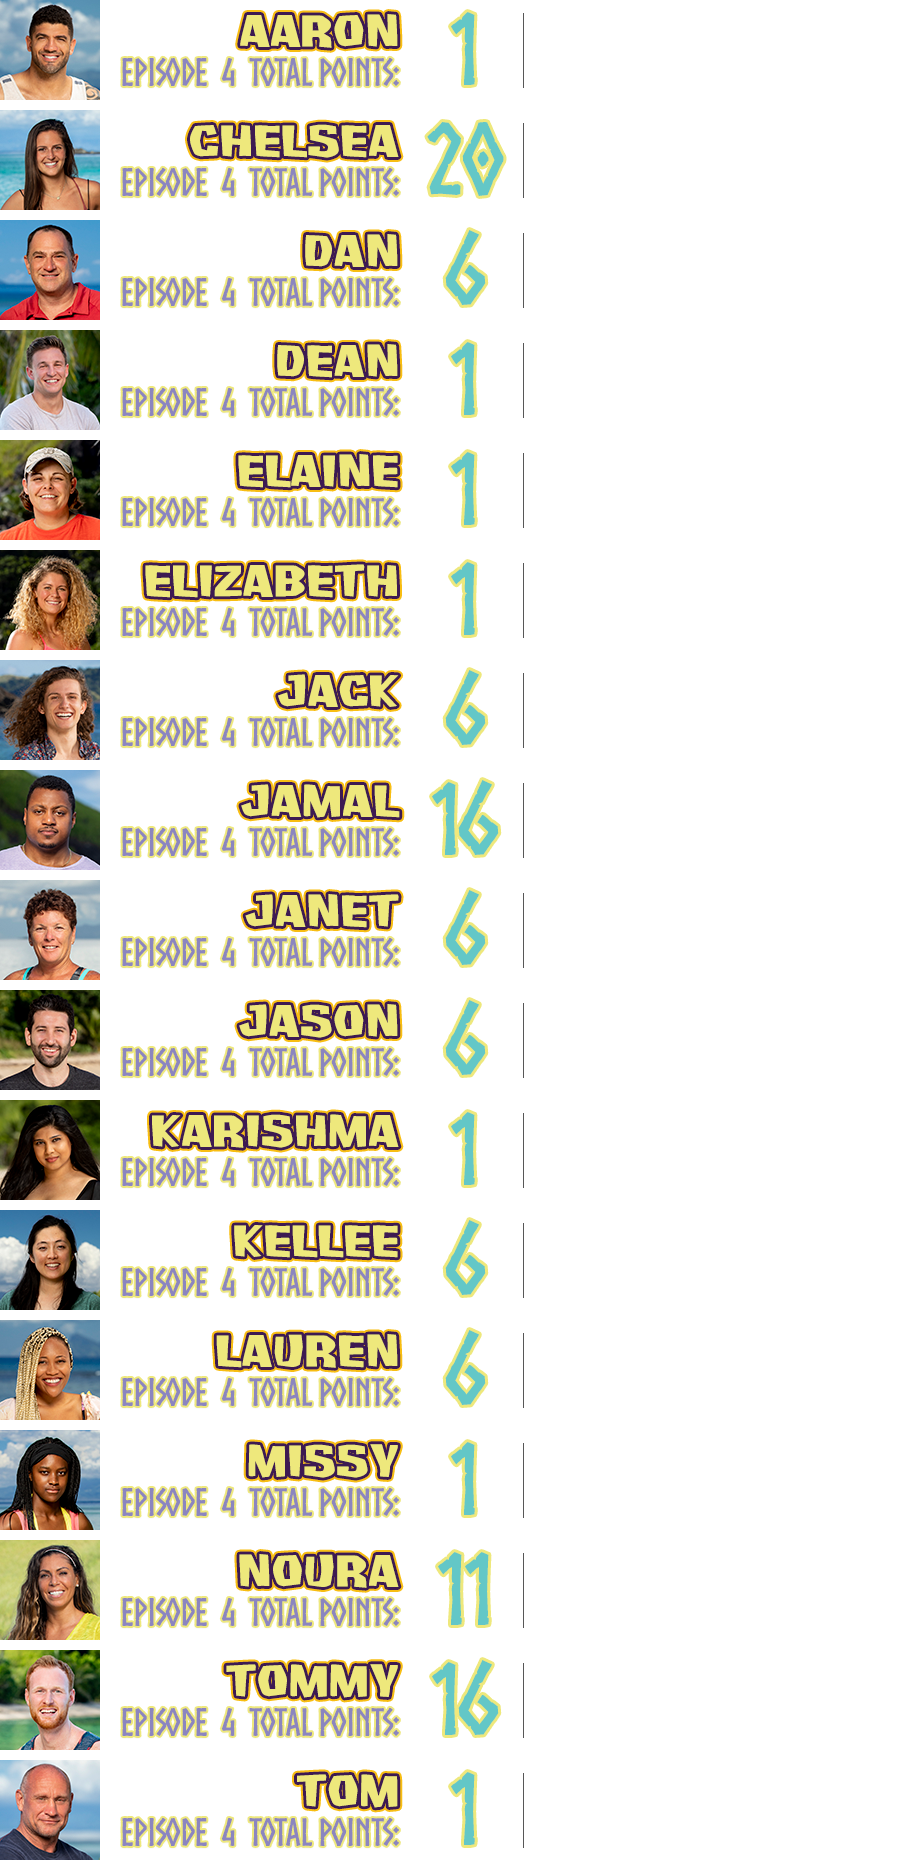 Aaron total points: 1, points breakdown: survived the week +1; Chelsea total points: 20, points breakdown: torch snuffed due to blindside +10, voted out while in possession of an idol +10; Dan total points: 6, points breakdown: won group immunity challenge +5, survived the week +1; Dean total points: 1, points breakdown: survived the week +1; Elaine total points: 1, points breakdown: survived the week +1; Elizabeth total points: 1, points breakdown: survived the week +1; Jack total points: 6, points breakdown: won group immunity challenge +5, survived the week +1; Jamal total points: 16, points breakdown: found a hidden immunity idol +10, won group immunity challenge +5, survived the week +1; Janet total points: 6, points breakdown: won group immunity challenge +5, survived the week +1; Jason total points: 6, points breakdown: won group immunity challenge +5, survived the week +1; Karishma total points: 1, points breakdown: survived the week +1; Kellee total points 6, points breakdown: won group immunity challenge +5, survived the week +1; Lauren total points: 6, points breakdown: won group immunity challenge +5, survived the week +1; Missy total points: 1, points breakdown: survived the week +1; Noura total points: 11, points breakdown: went to Island of the Idols +5, won group immunity challenge +5, survived the week +1; Tommy total points: 16, points breakdown: won group immunity challenge +5, caught a fish +10, survived the week +1; Tom total points: 1, points breakdown: survived the week +1